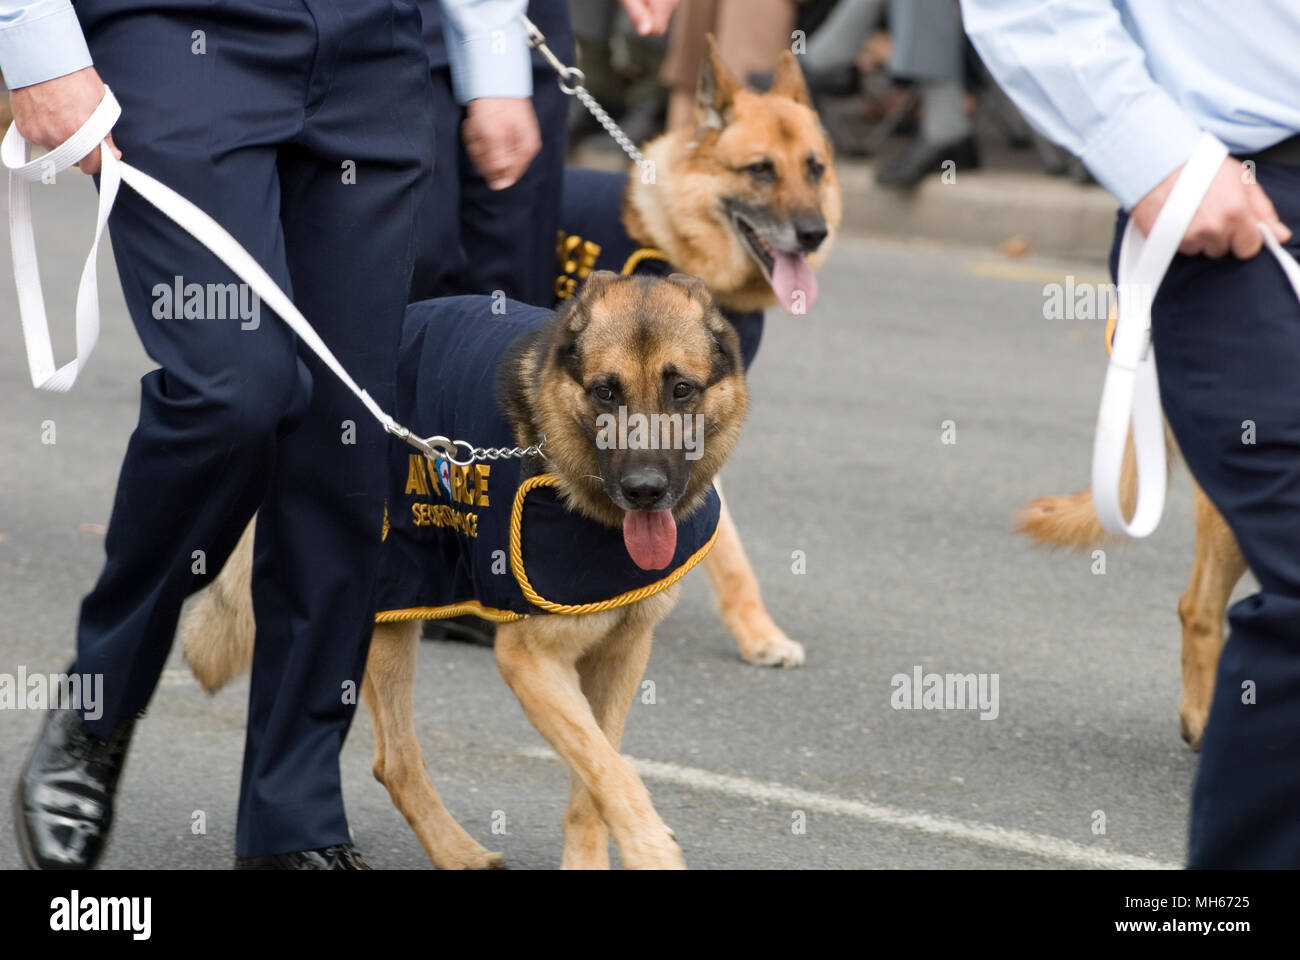 RAAF POLICE DOGS TAKING PART IN ANZAC DAY MARCH 2007, ADELAIDE, SOUTH AUSTRALIA - Stock Image